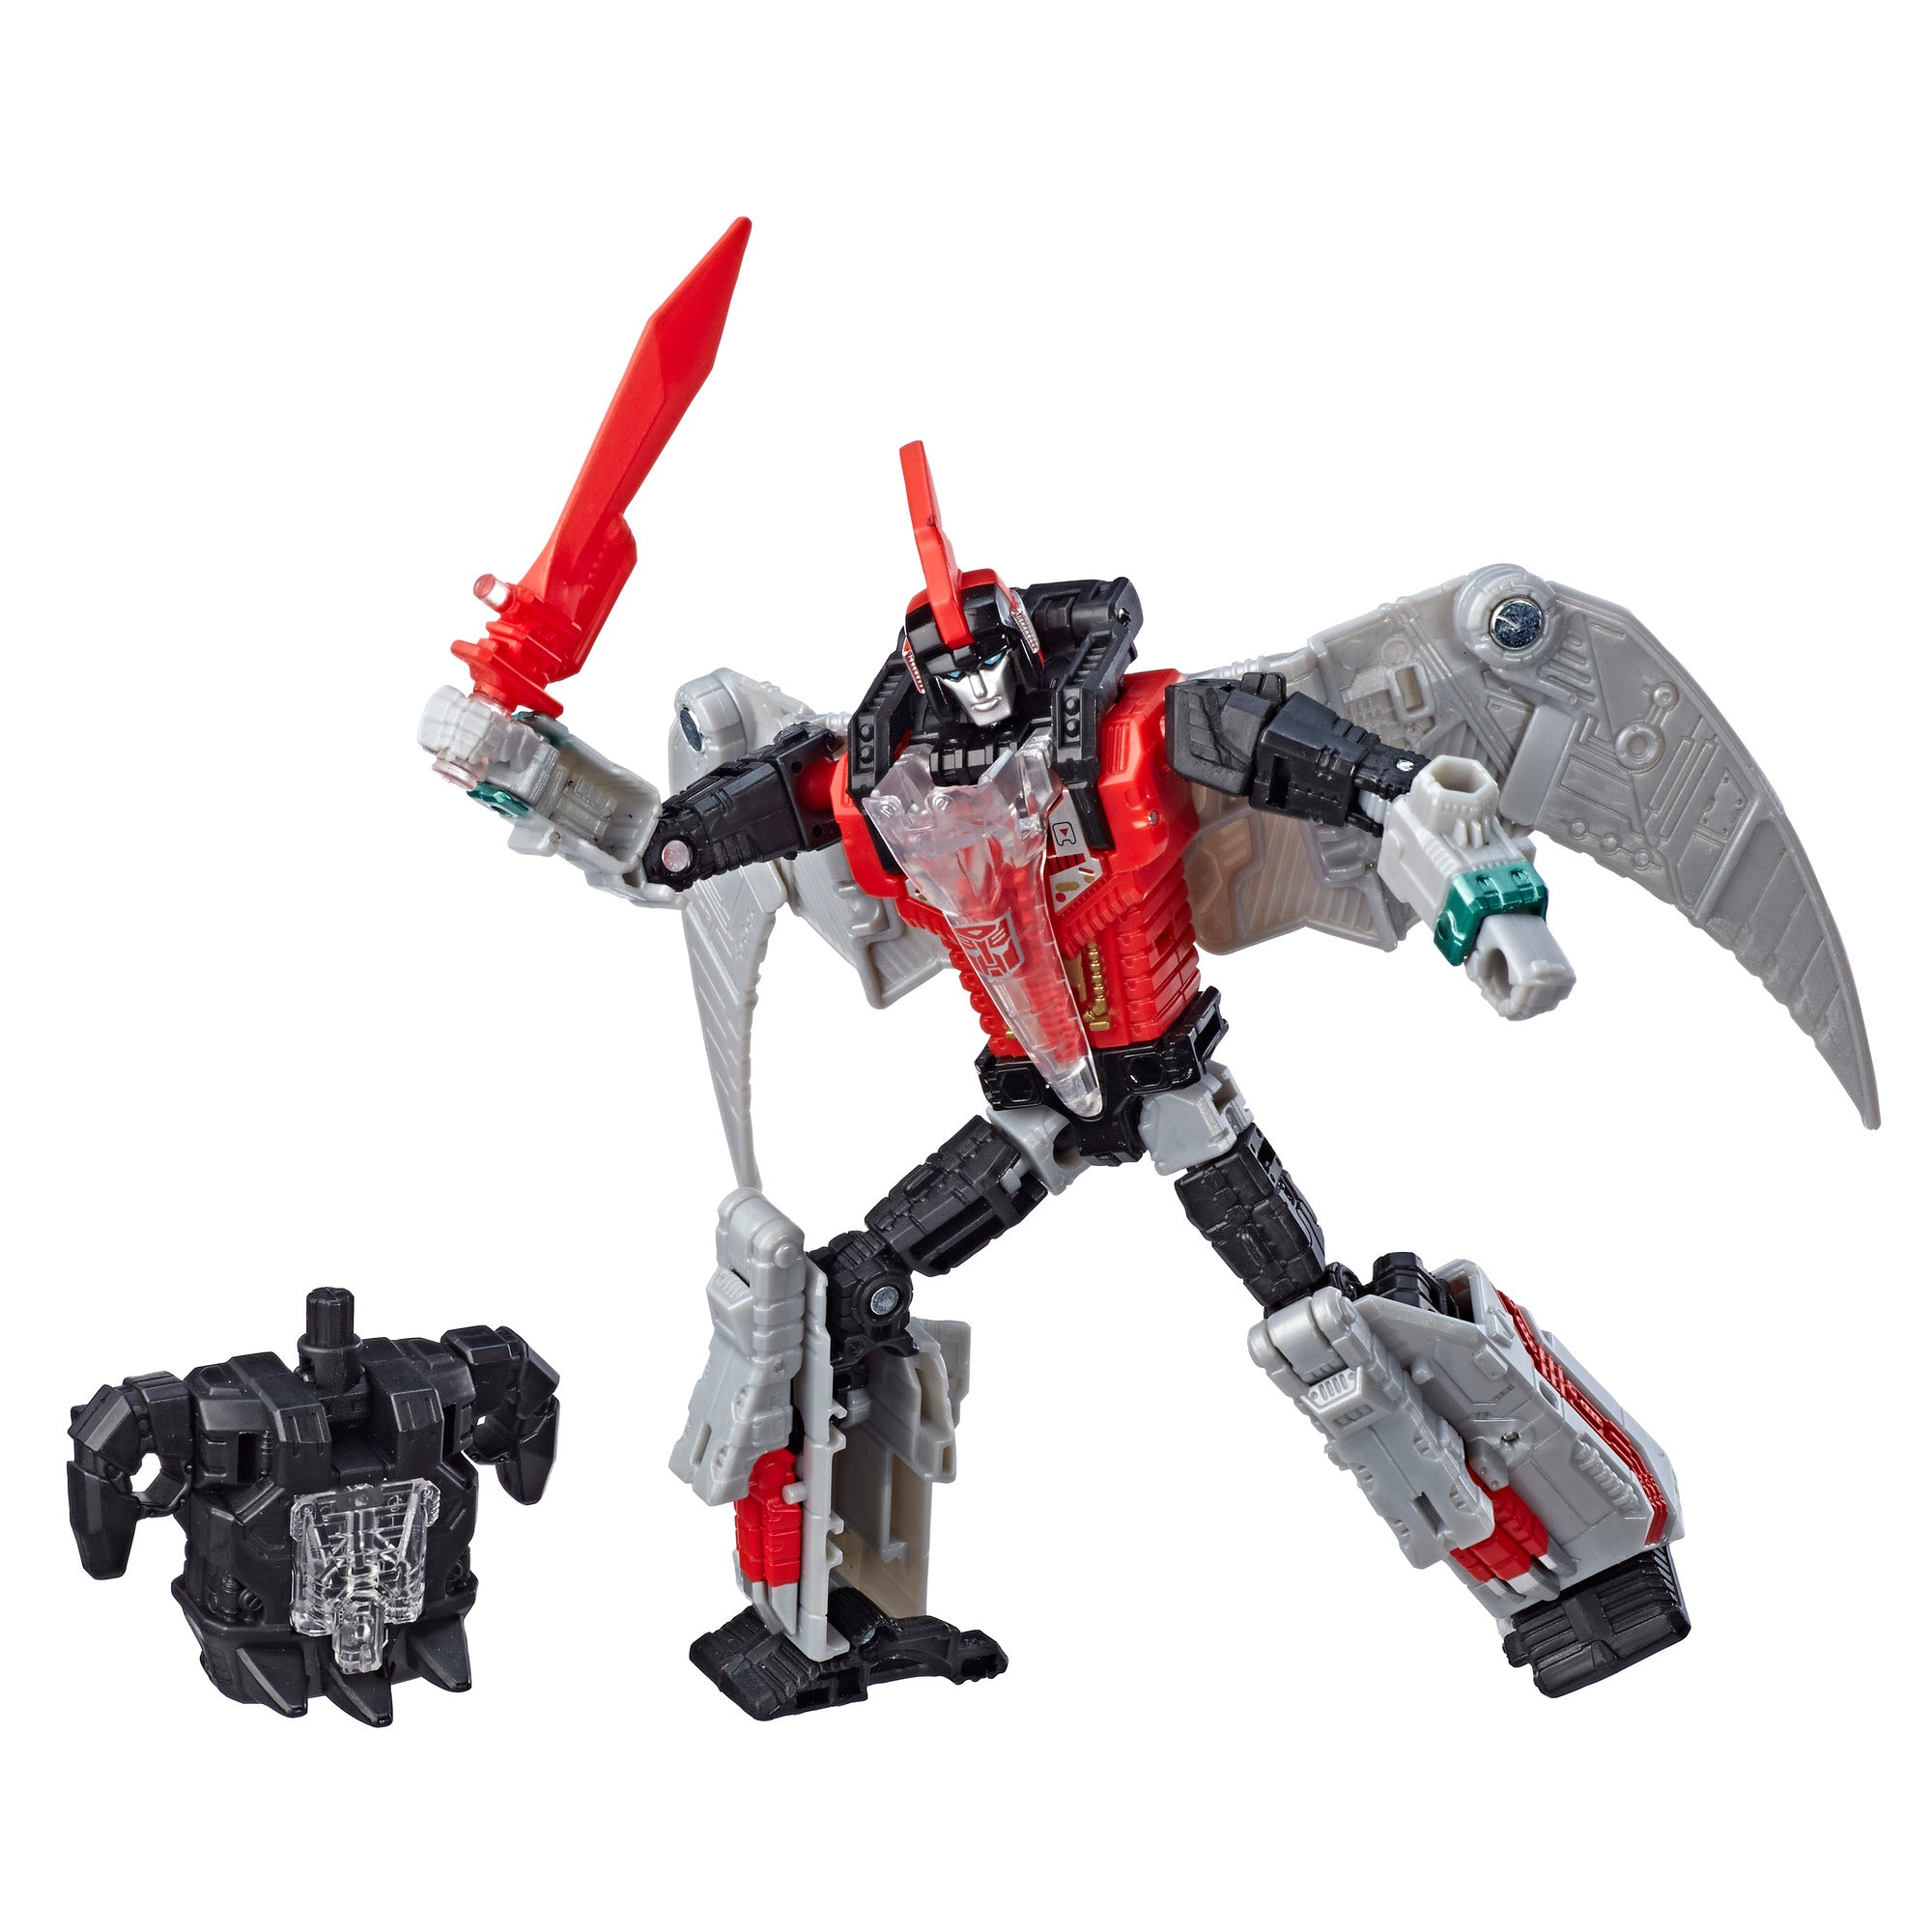 Transformers Generation 1 Dinobots Swoop G1 Action Figure Boxed